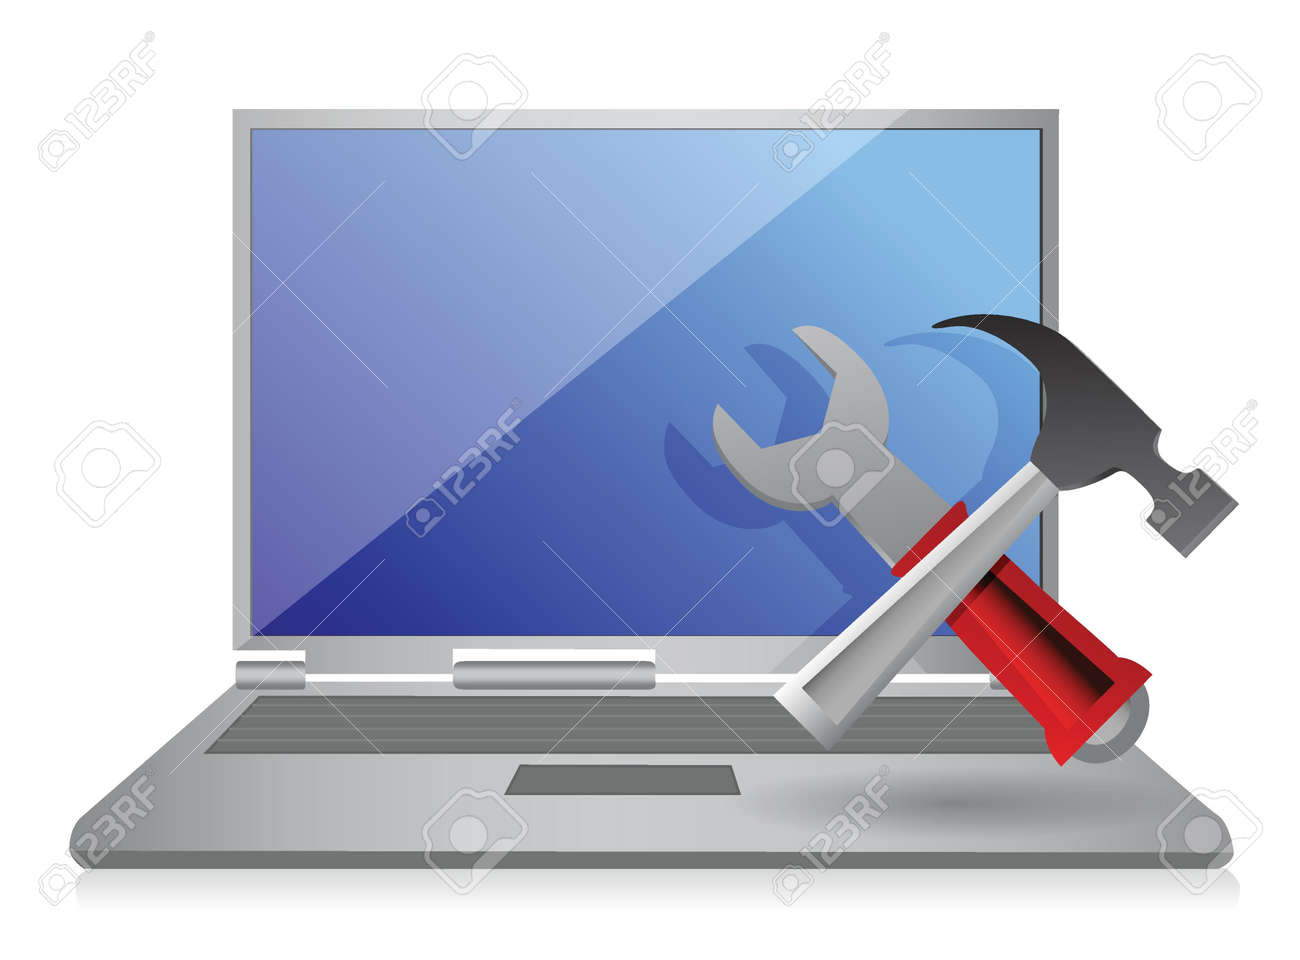 Laptop with hammer and wrench. illustration design Stock Vector - 17250159